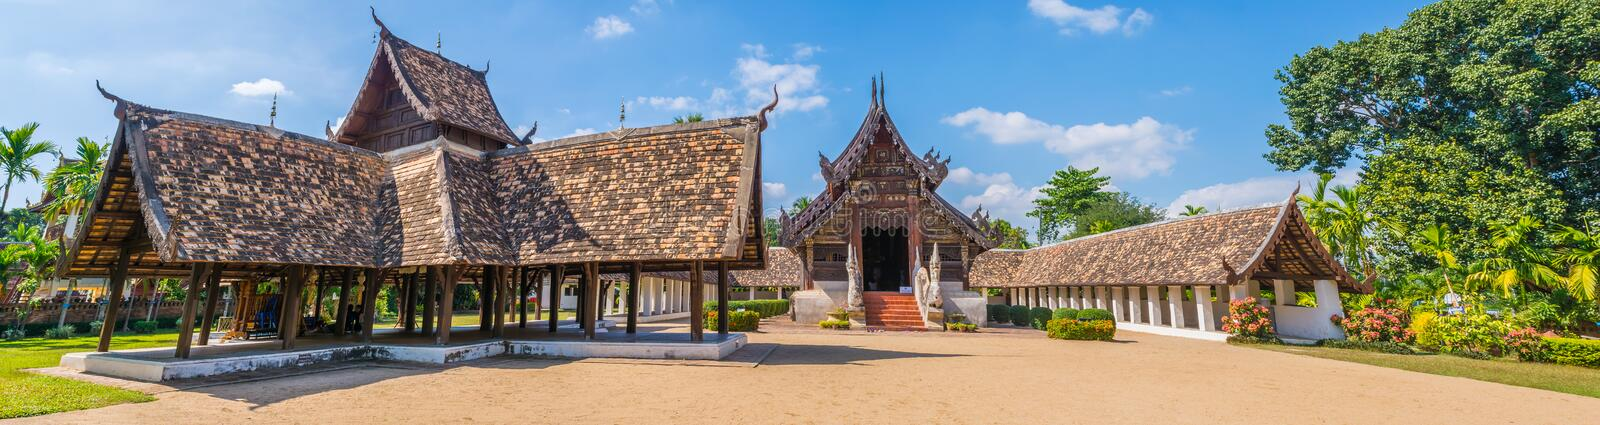 Download Panorama Tiré De Wat Ton Kain, En Chiang Mai Thailand Image stock - Image du conception, antique: 76087151